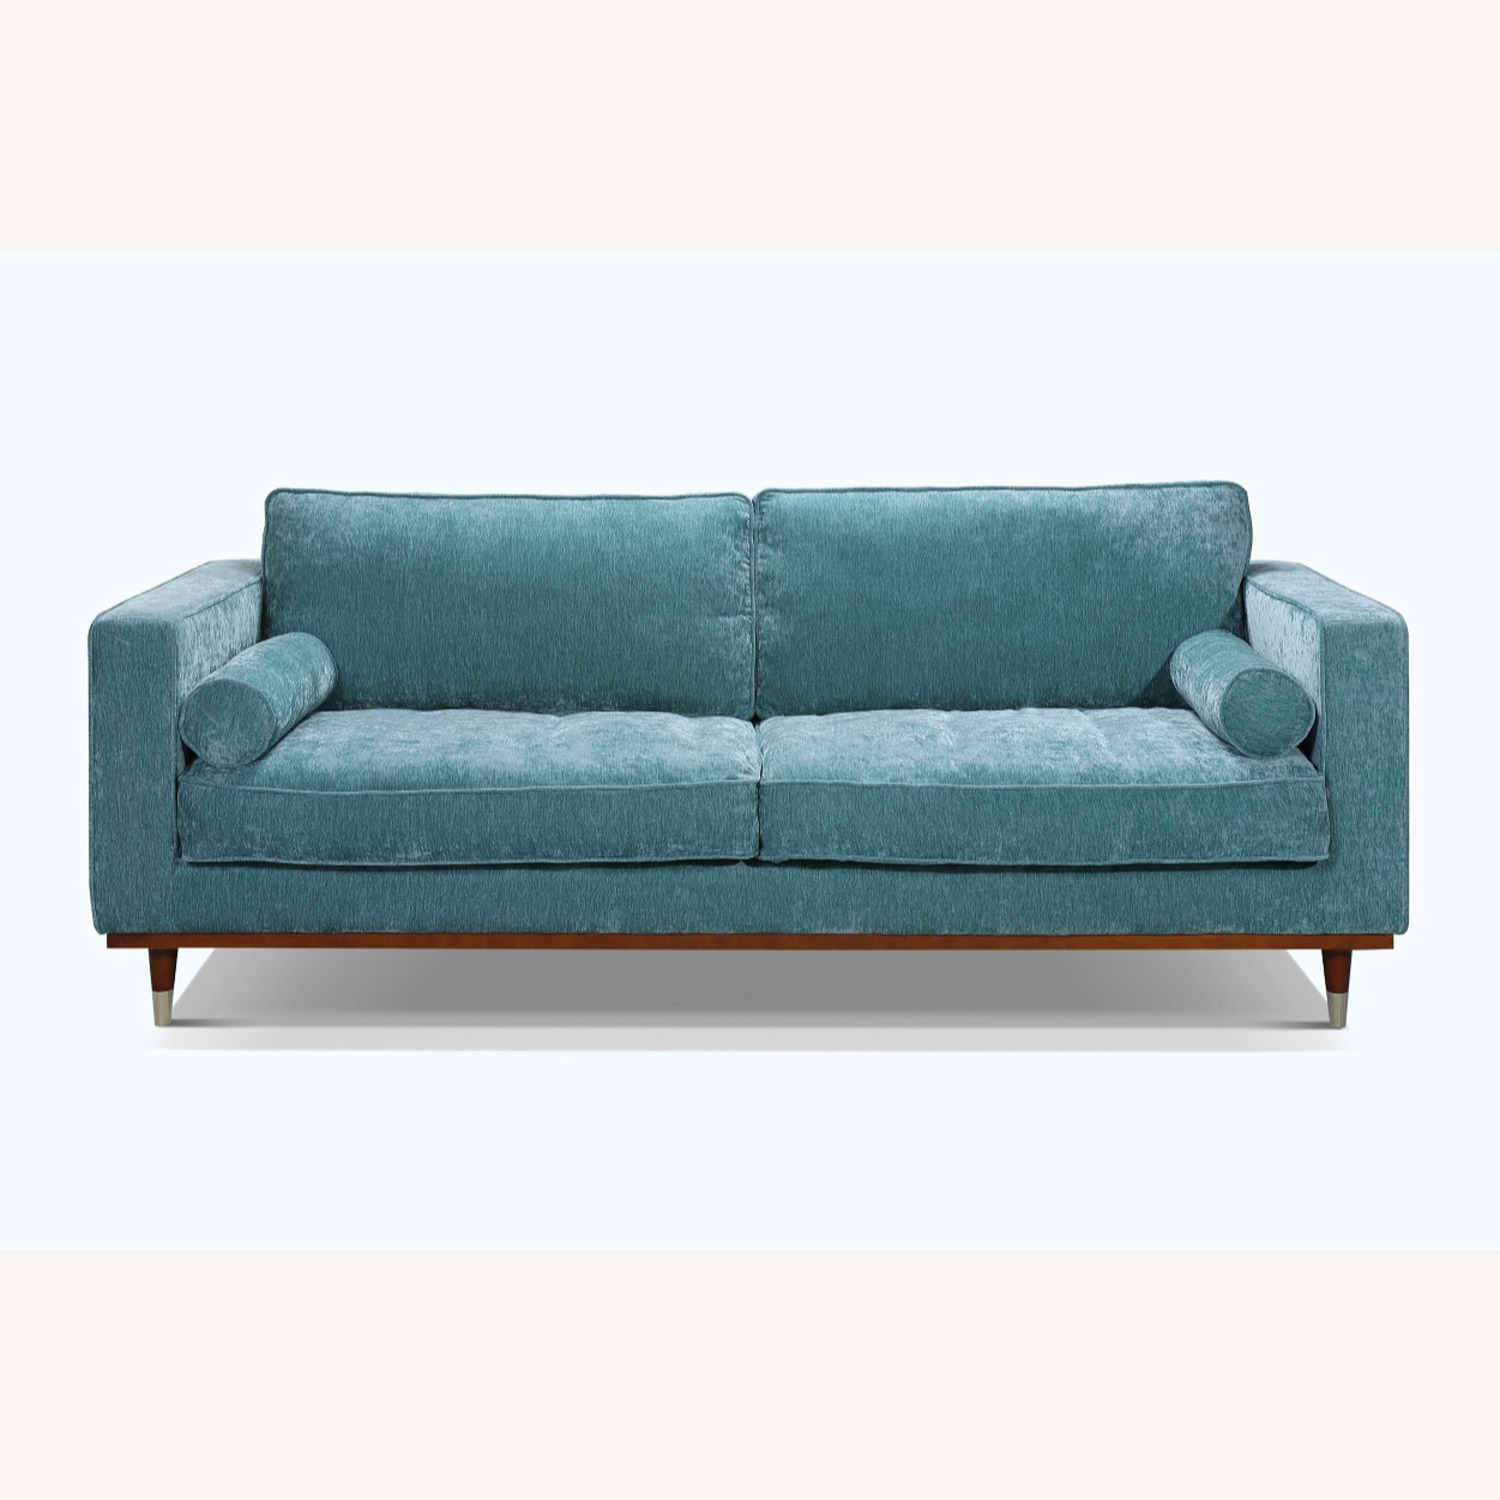 Brooklyn Space Introspect Mid-Century Modern Sofa - image-1